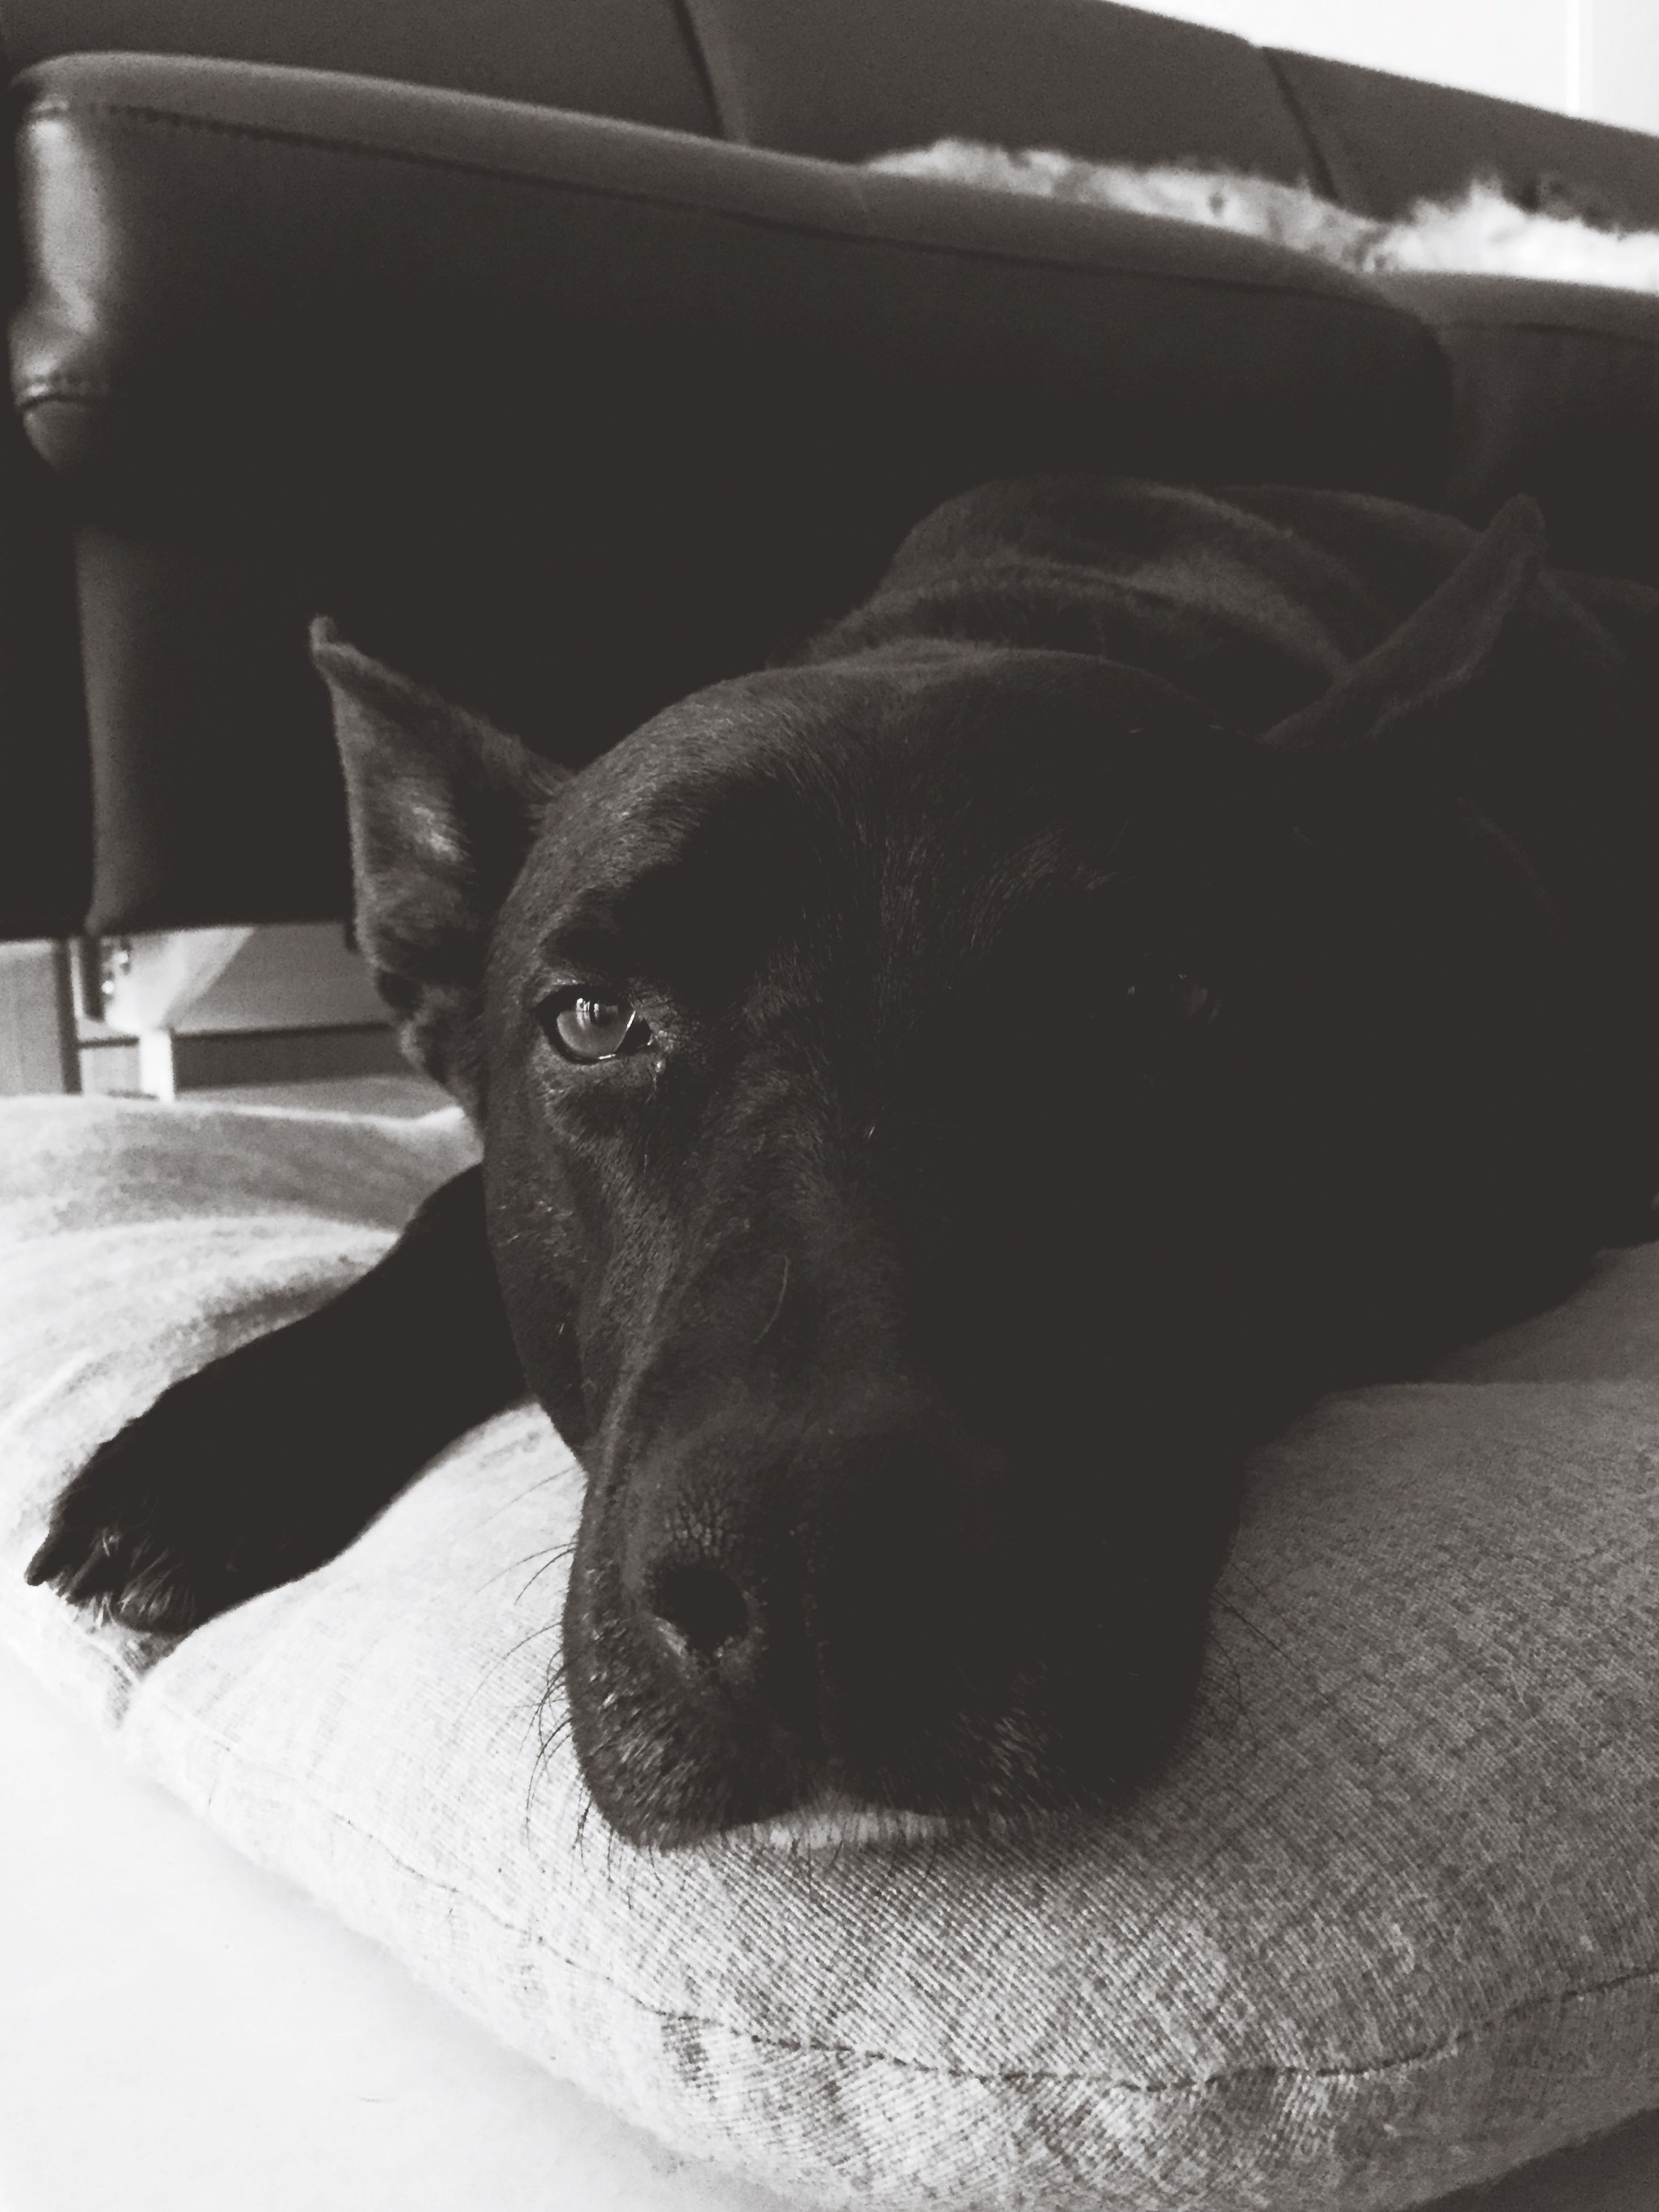 domestic animals, pets, one animal, animal themes, mammal, indoors, dog, relaxation, animal head, resting, close-up, portrait, looking at camera, bed, lying down, sofa, animal body part, home interior, black color, no people